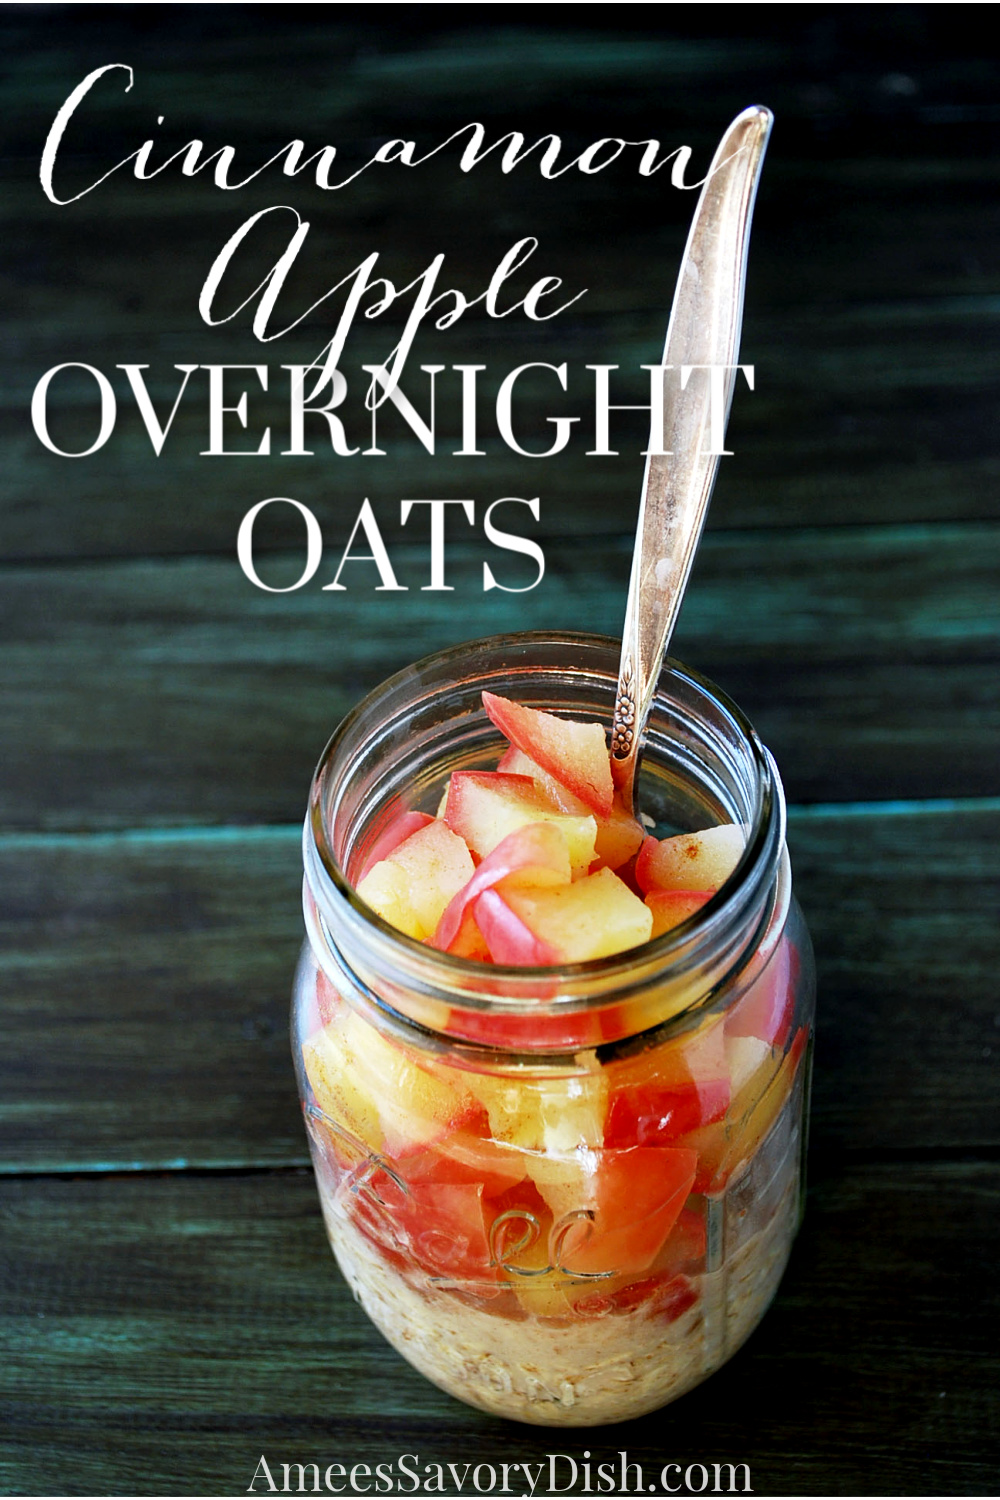 A simple and easy recipe for cinnamon apple overnight oats using microwave cooked apples, ground cinnamon, whole oats, and natural sweetener.#overnightoats #appleovernightoats #appleoatmeal #oatmeal via @Ameecooks